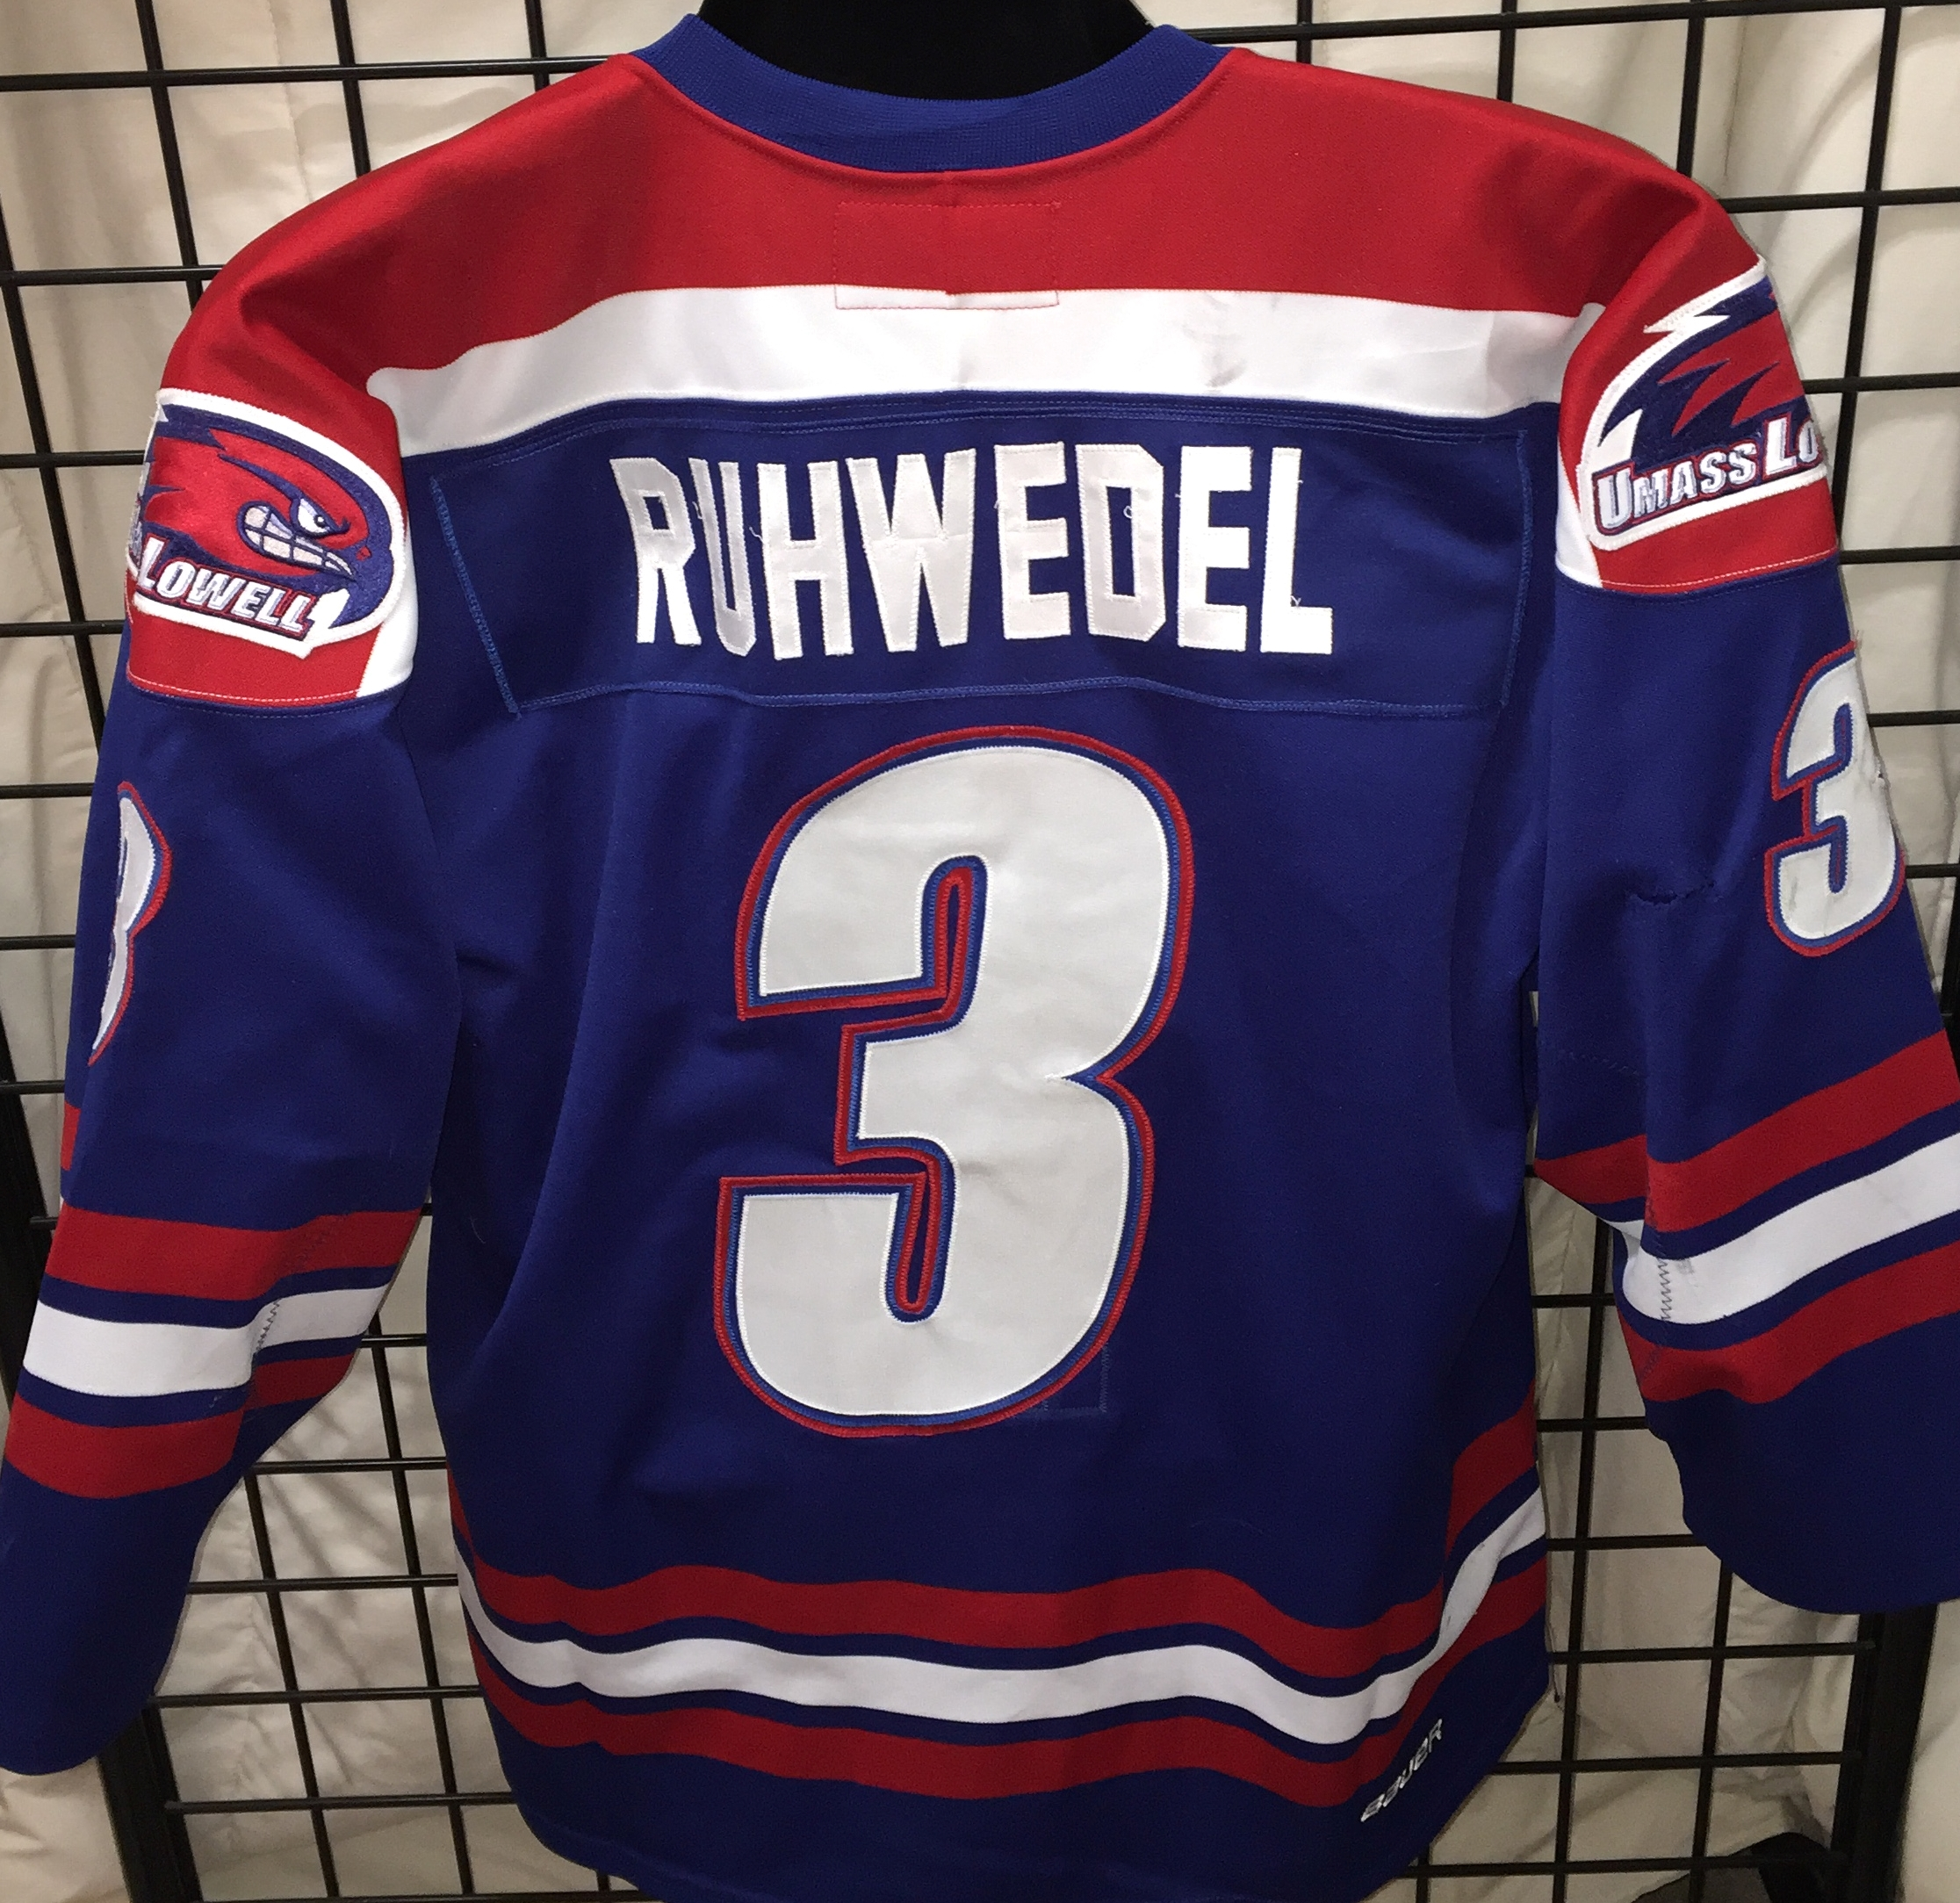 huge selection of 5e39d 7ca75 Chad Ruhwedel - UMass Lowell - Game Used/Worn Jerseys - GV ...